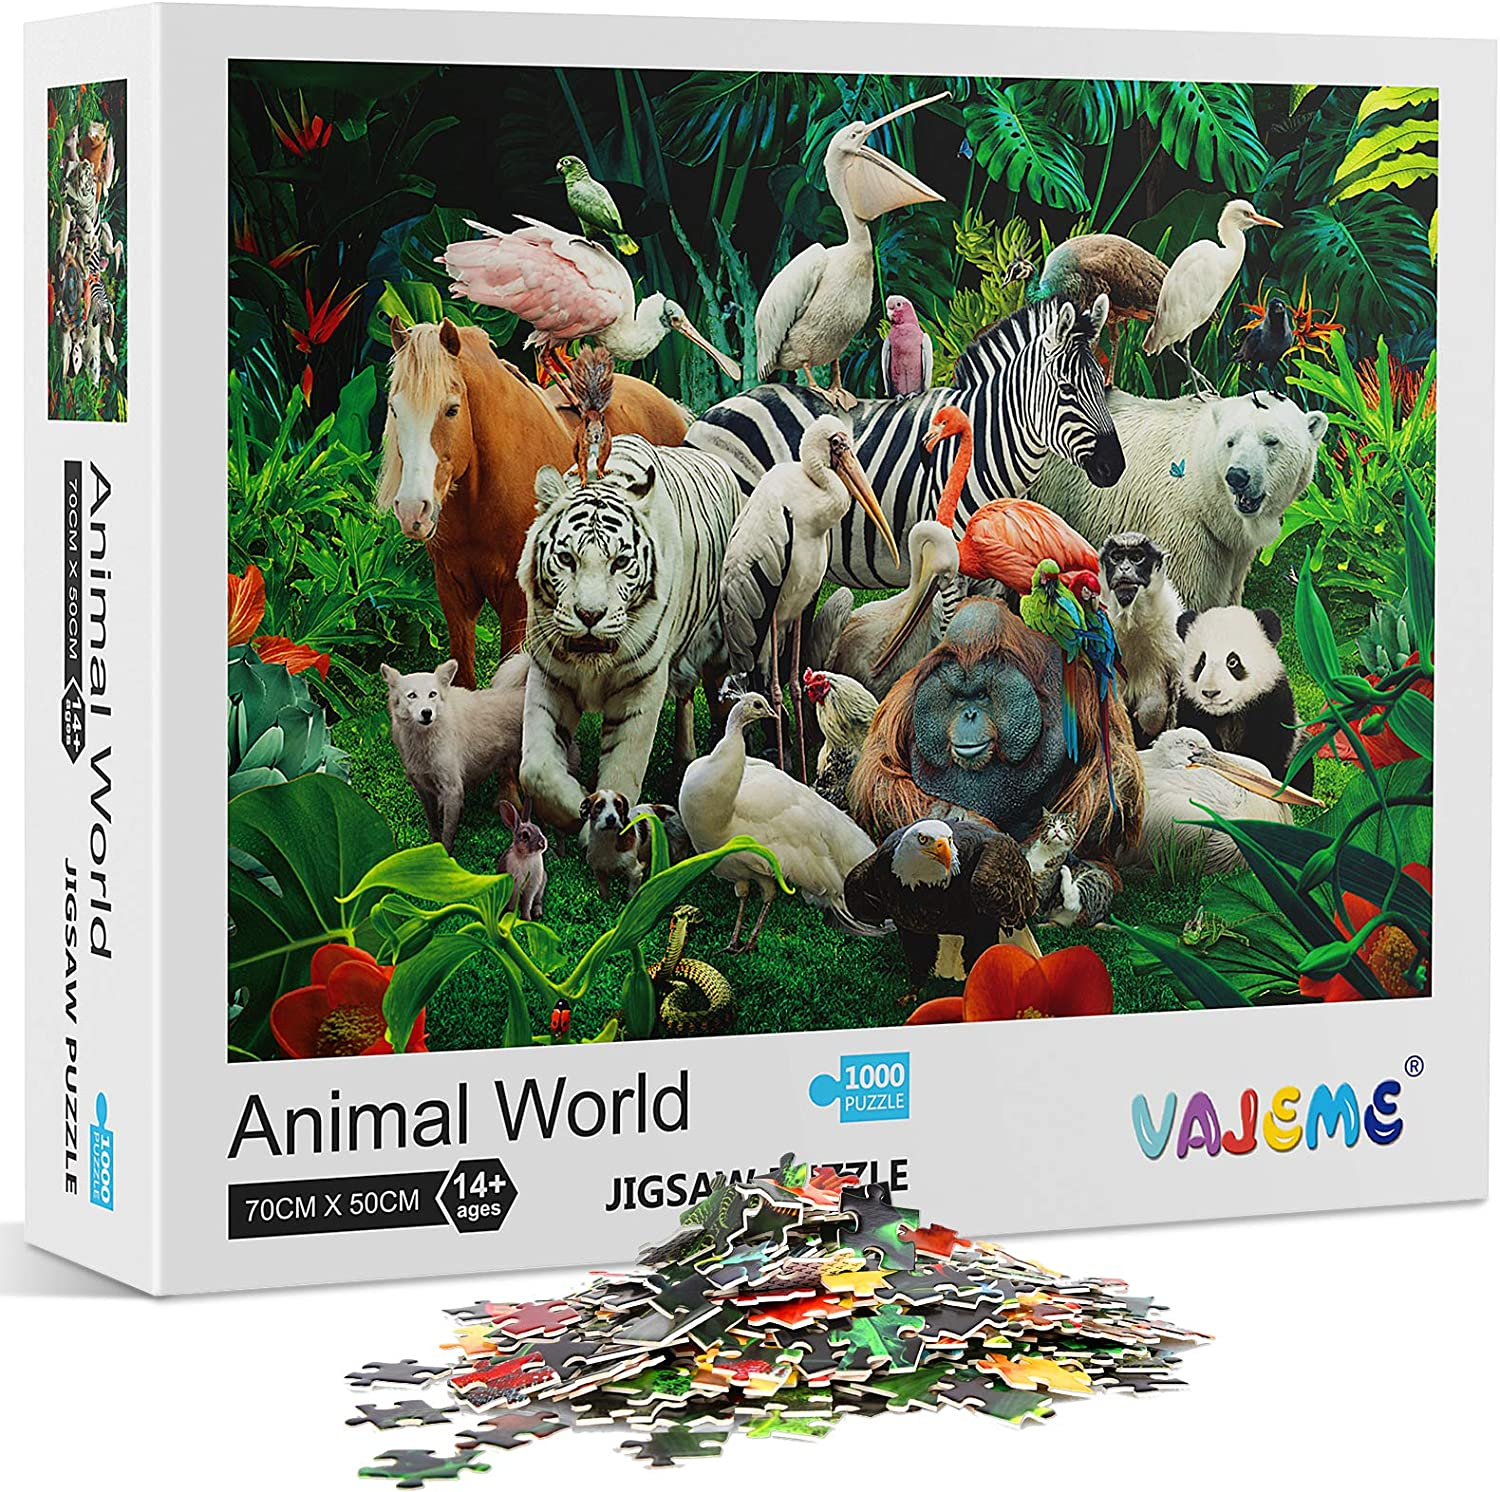 Puzzles for Adults 1000 Piece Jigsaw Puzzles 1000 Pieces for Adults Kids Large Puzzle Game Toys Gift Animal World 27 x 20